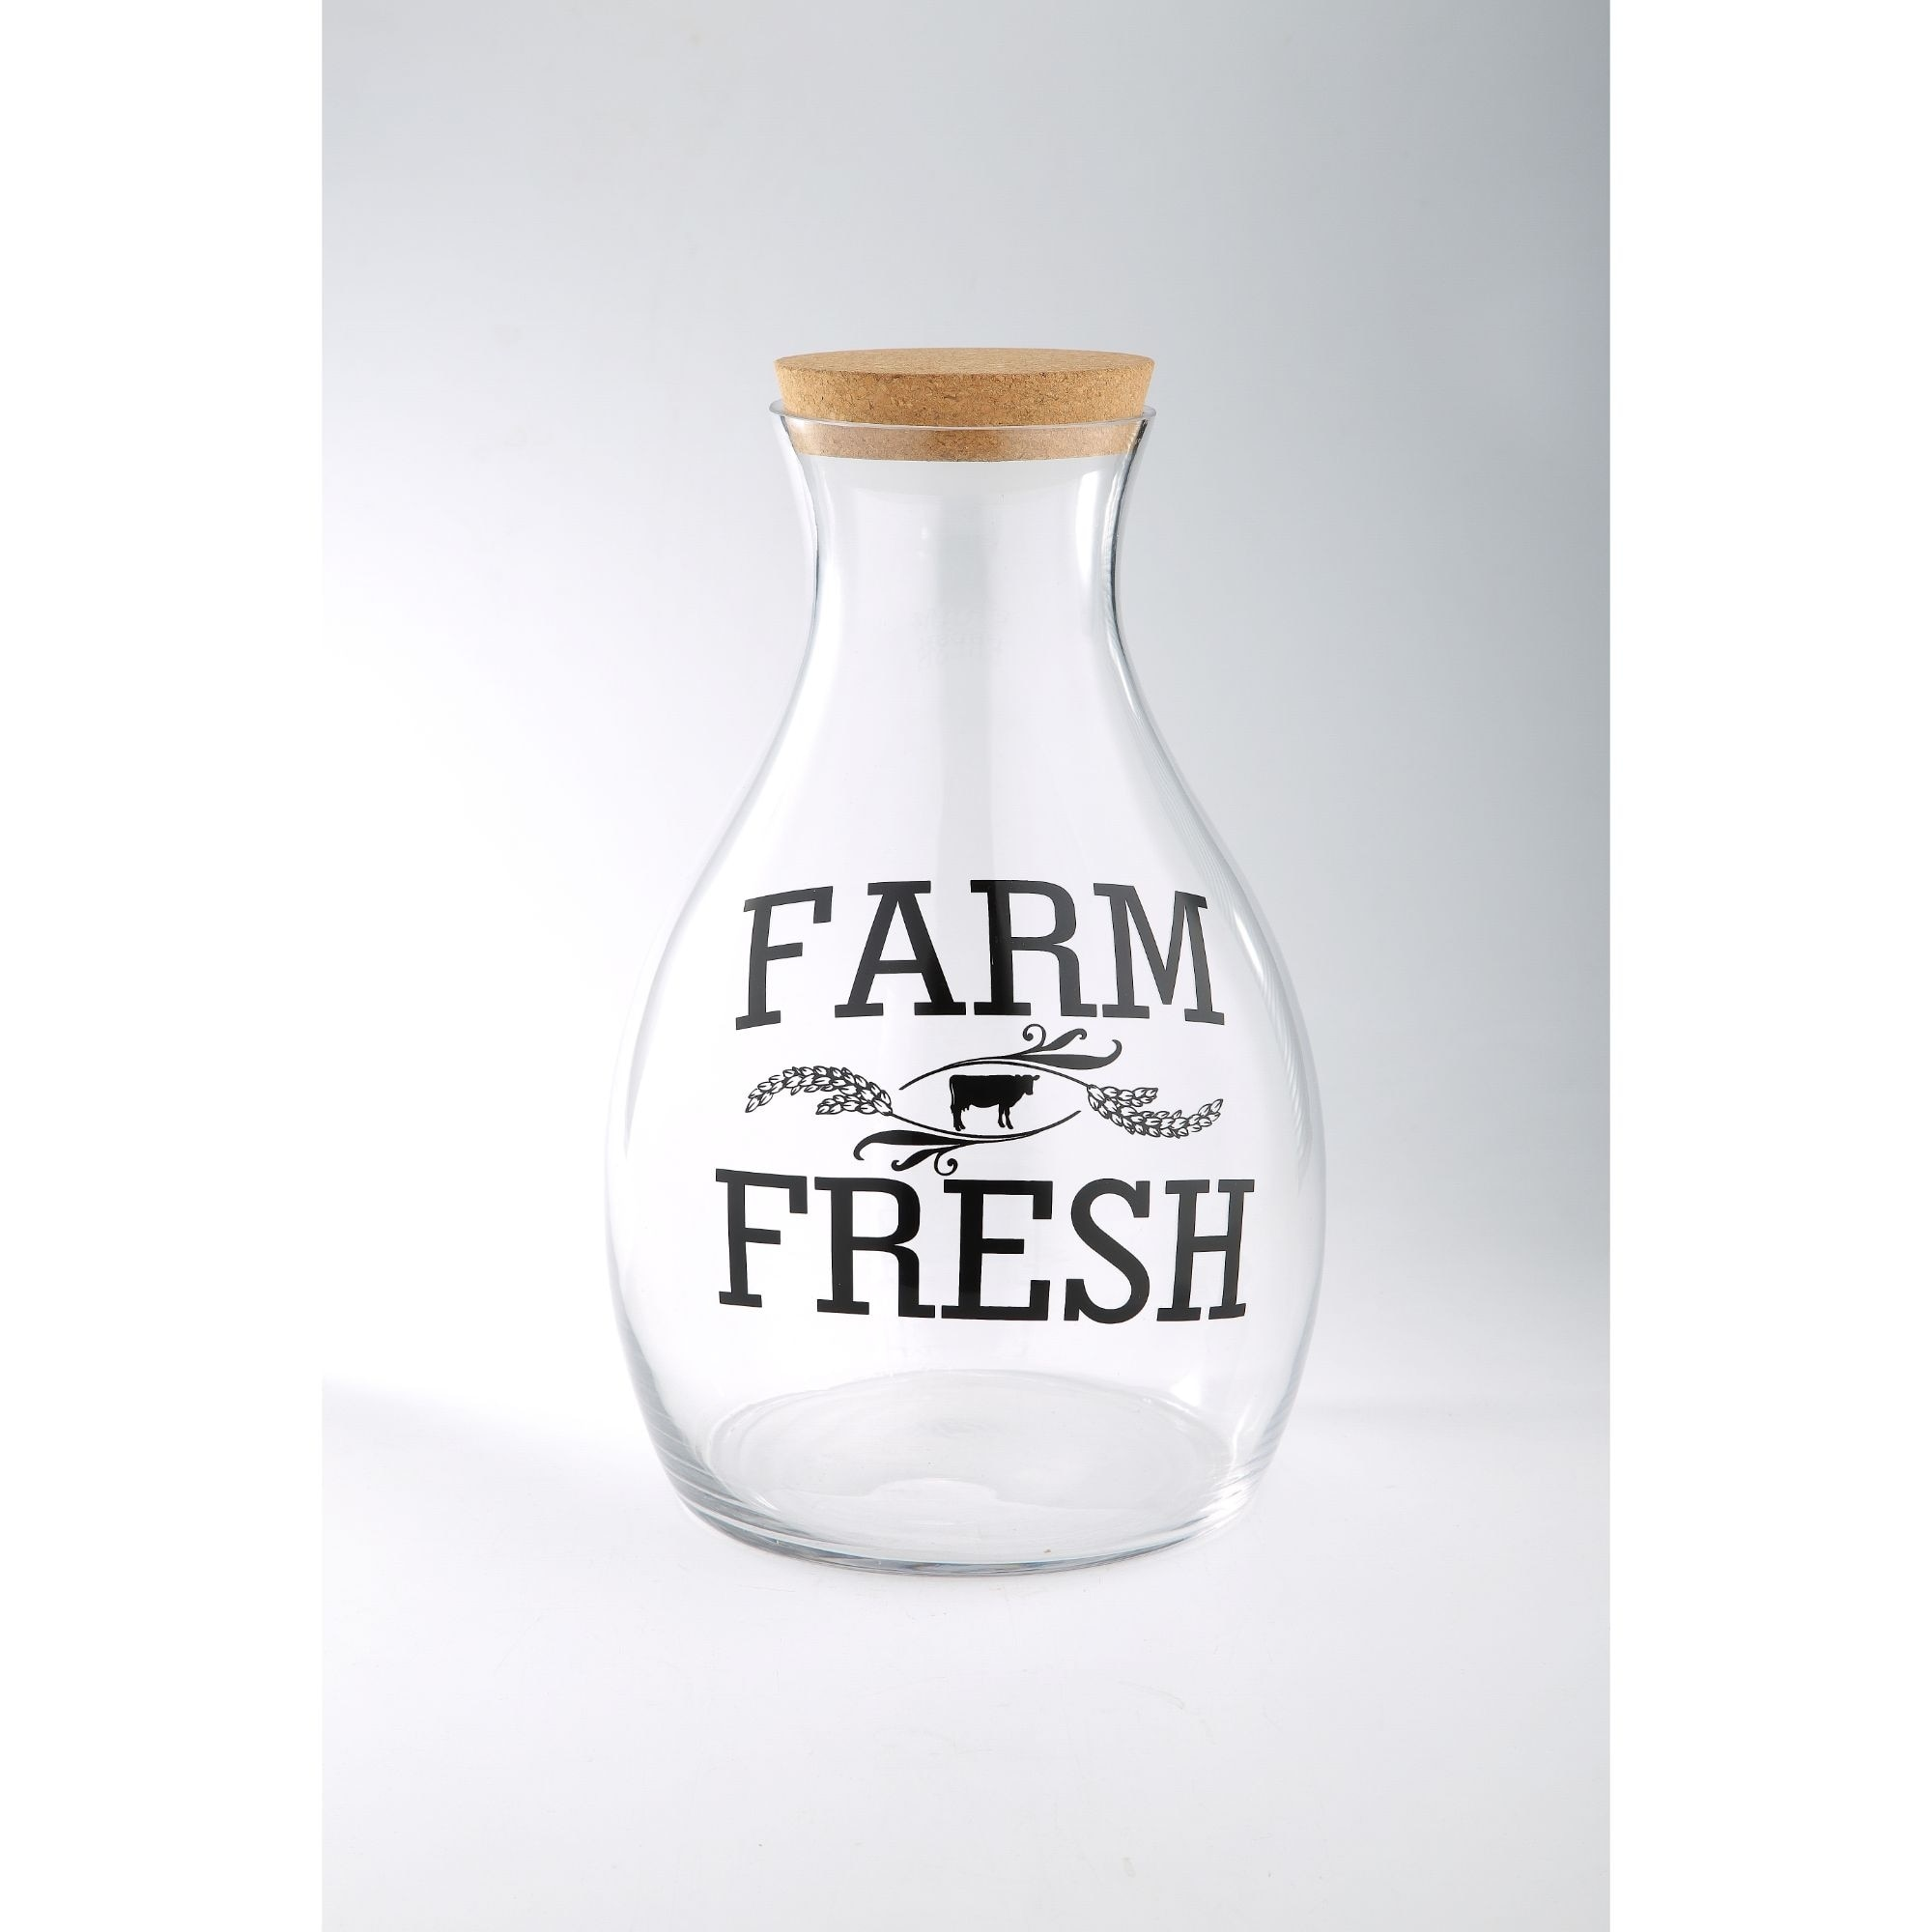 15 5 Clear And Black Hand Blown Glass Farm Fresh Bottle Vase Overstock 28683146